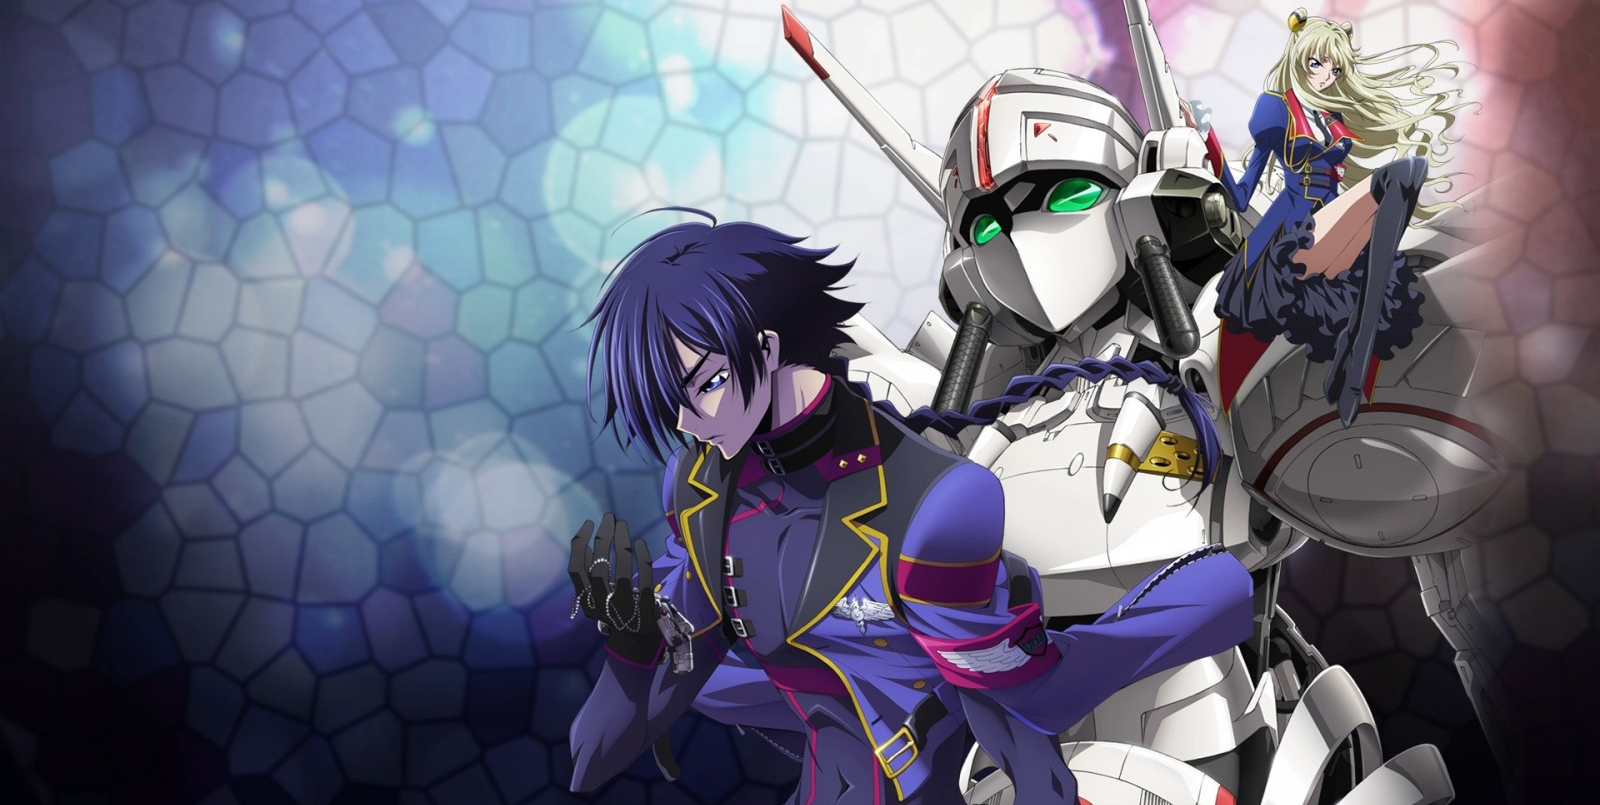 Xem phim Code Geass: Boukoku no Akito 5 Final - Itoshiki Monotachi e - Code Geass: Akito the Exiled 5 - To Beloved Ones | Code Geass: Boukoku no Akito 5 - Itoshiki Monotachi e Vietsub